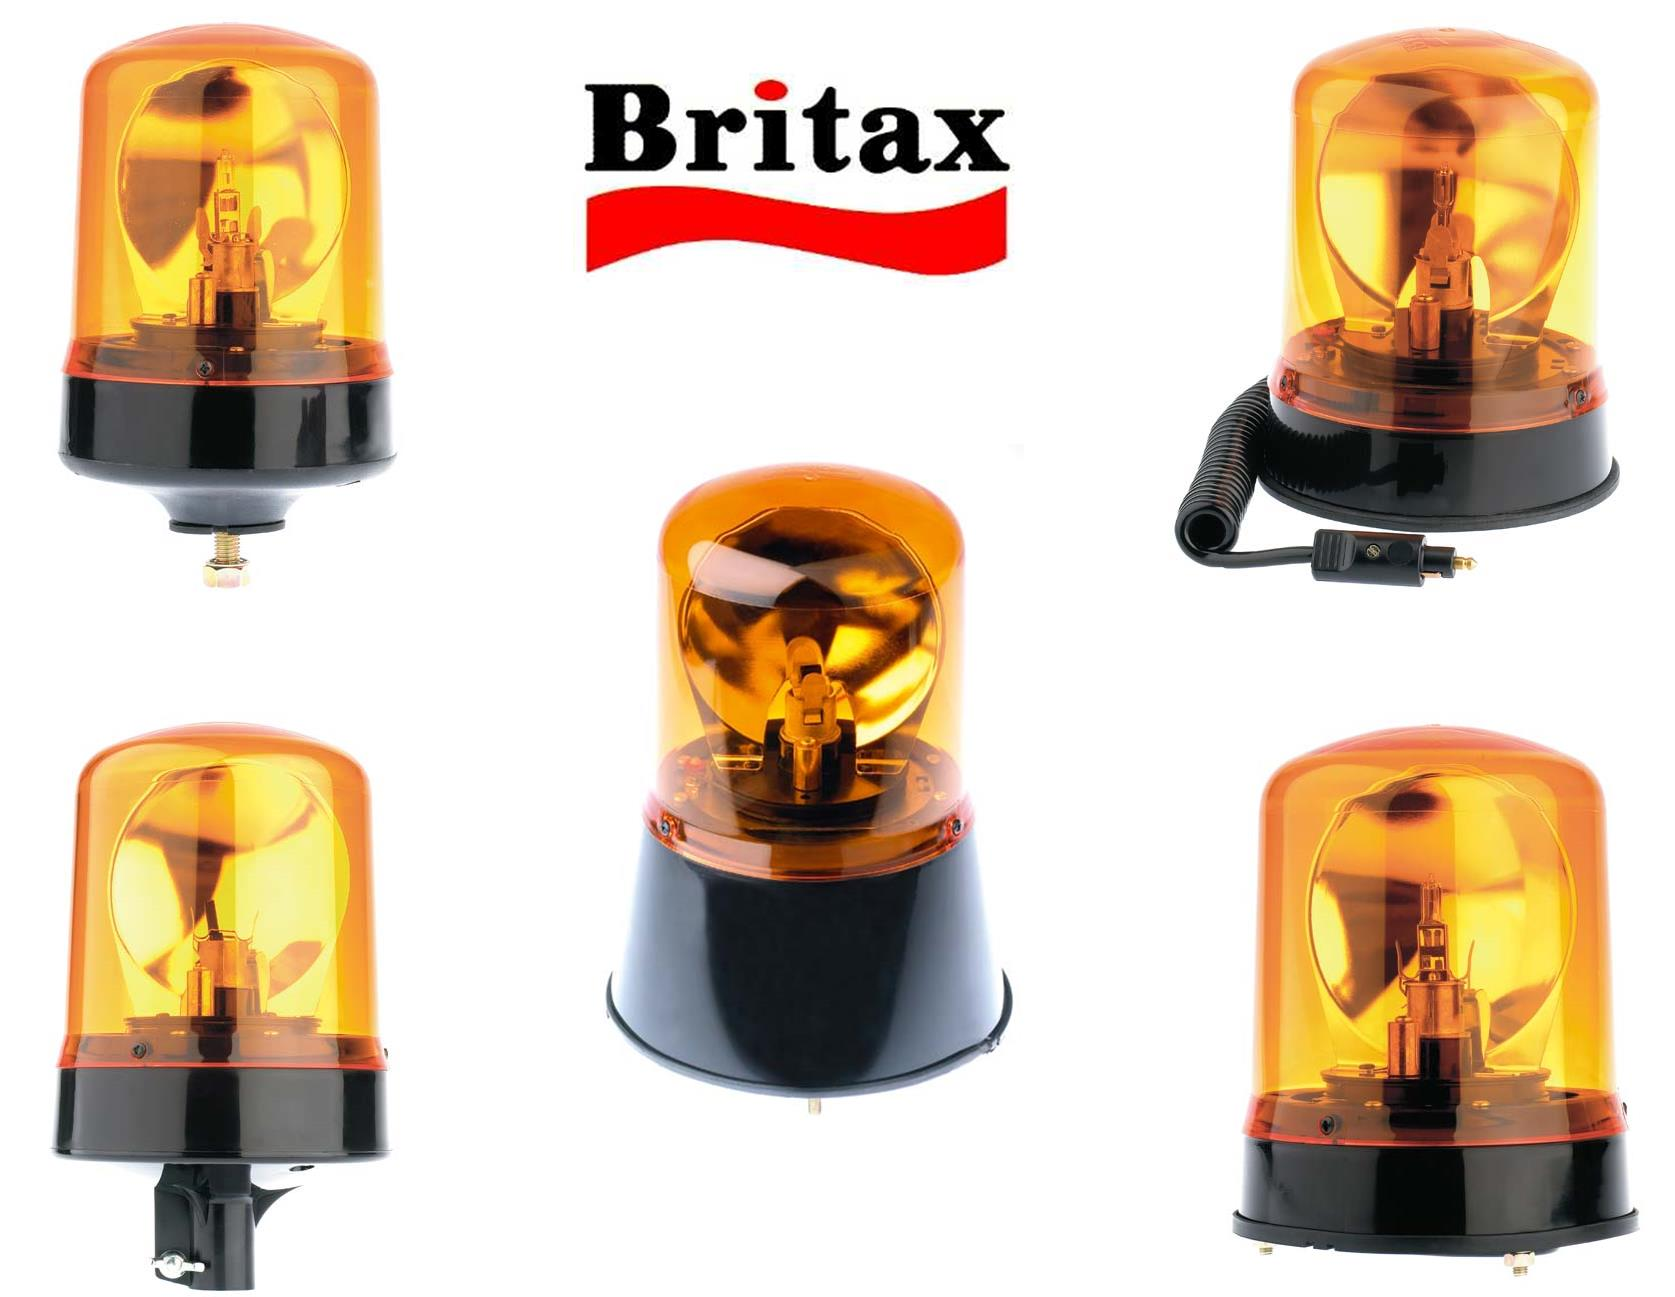 Britax 370 Series Rotating Beacons